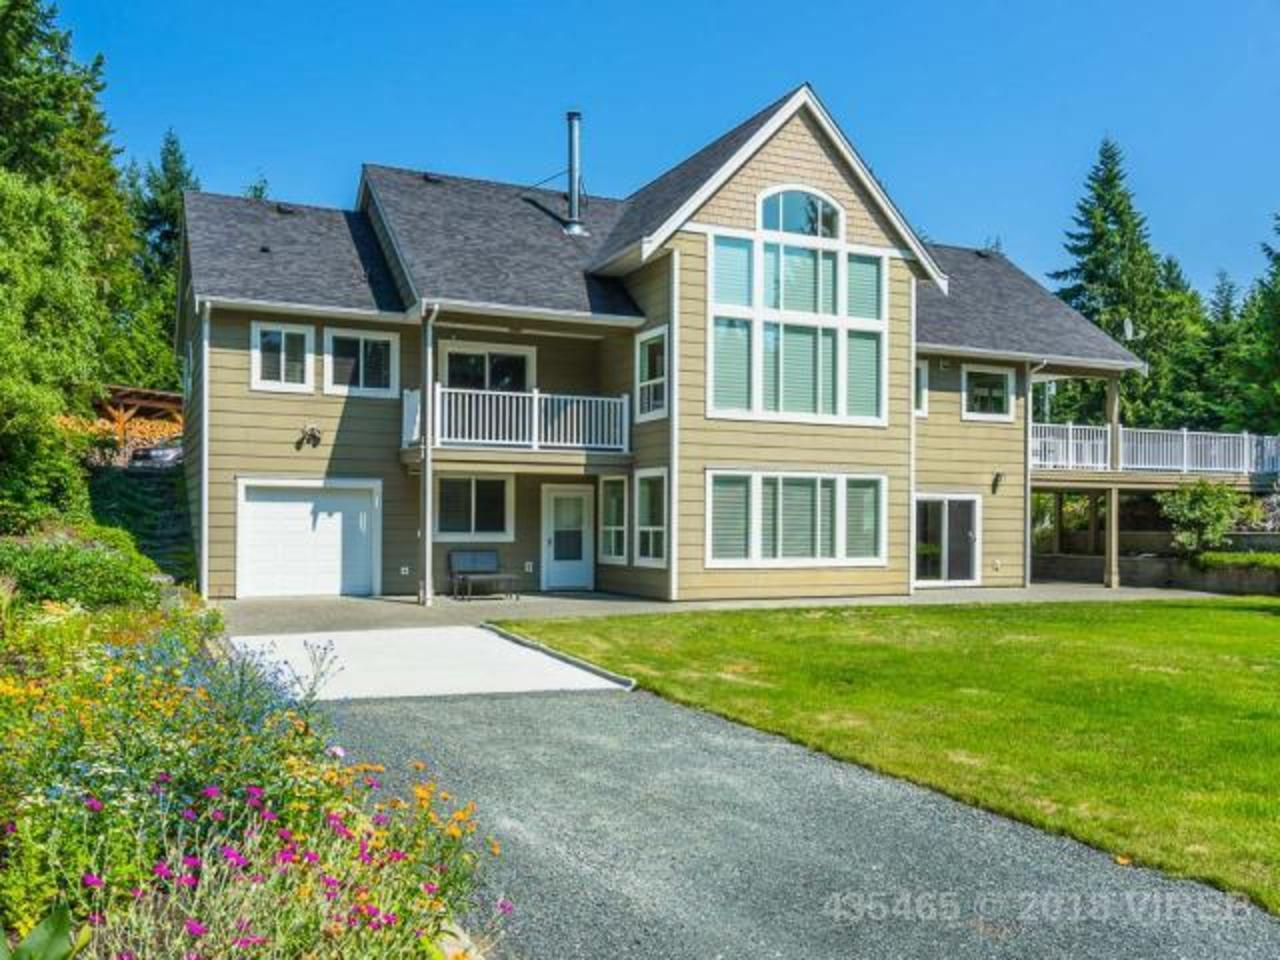 Photo 17 at 2700 Turnbull Road, Qualicum North, Oceanside